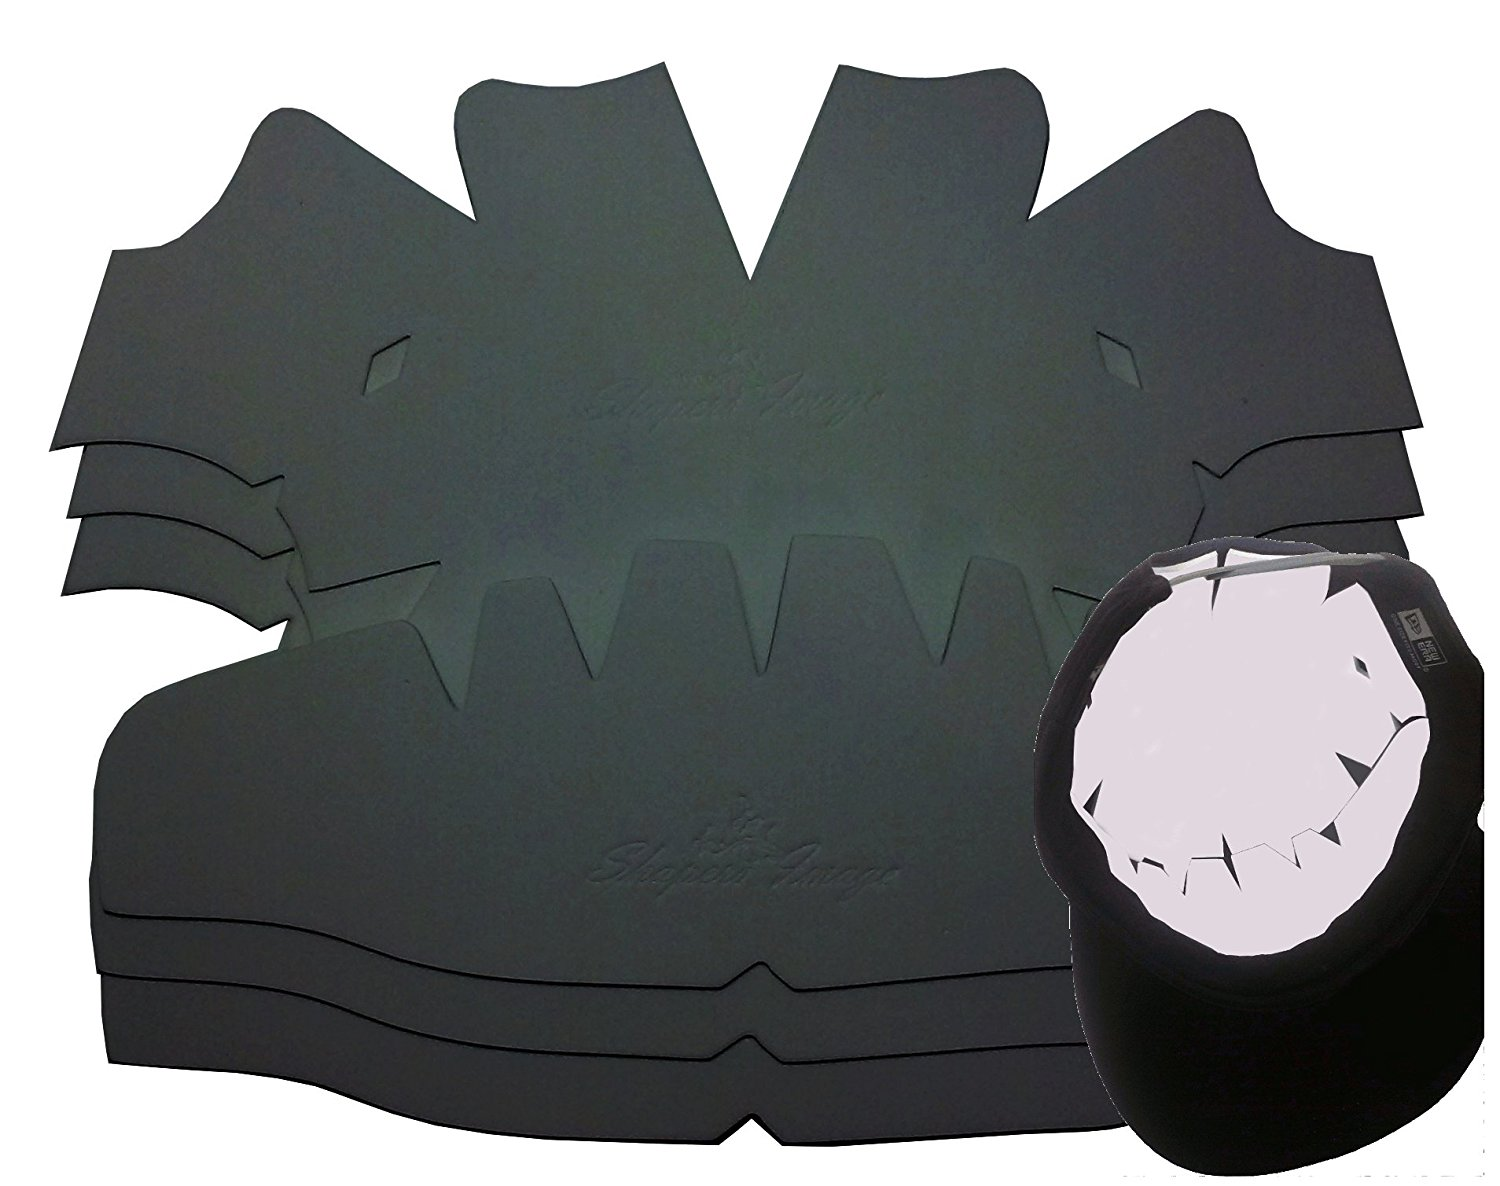 c341d7aa1f8 Get Quotations · 3Pk. Baseball Cap Dome Panel Shaper and Hat Crown Insert  Combo-Flexible-High